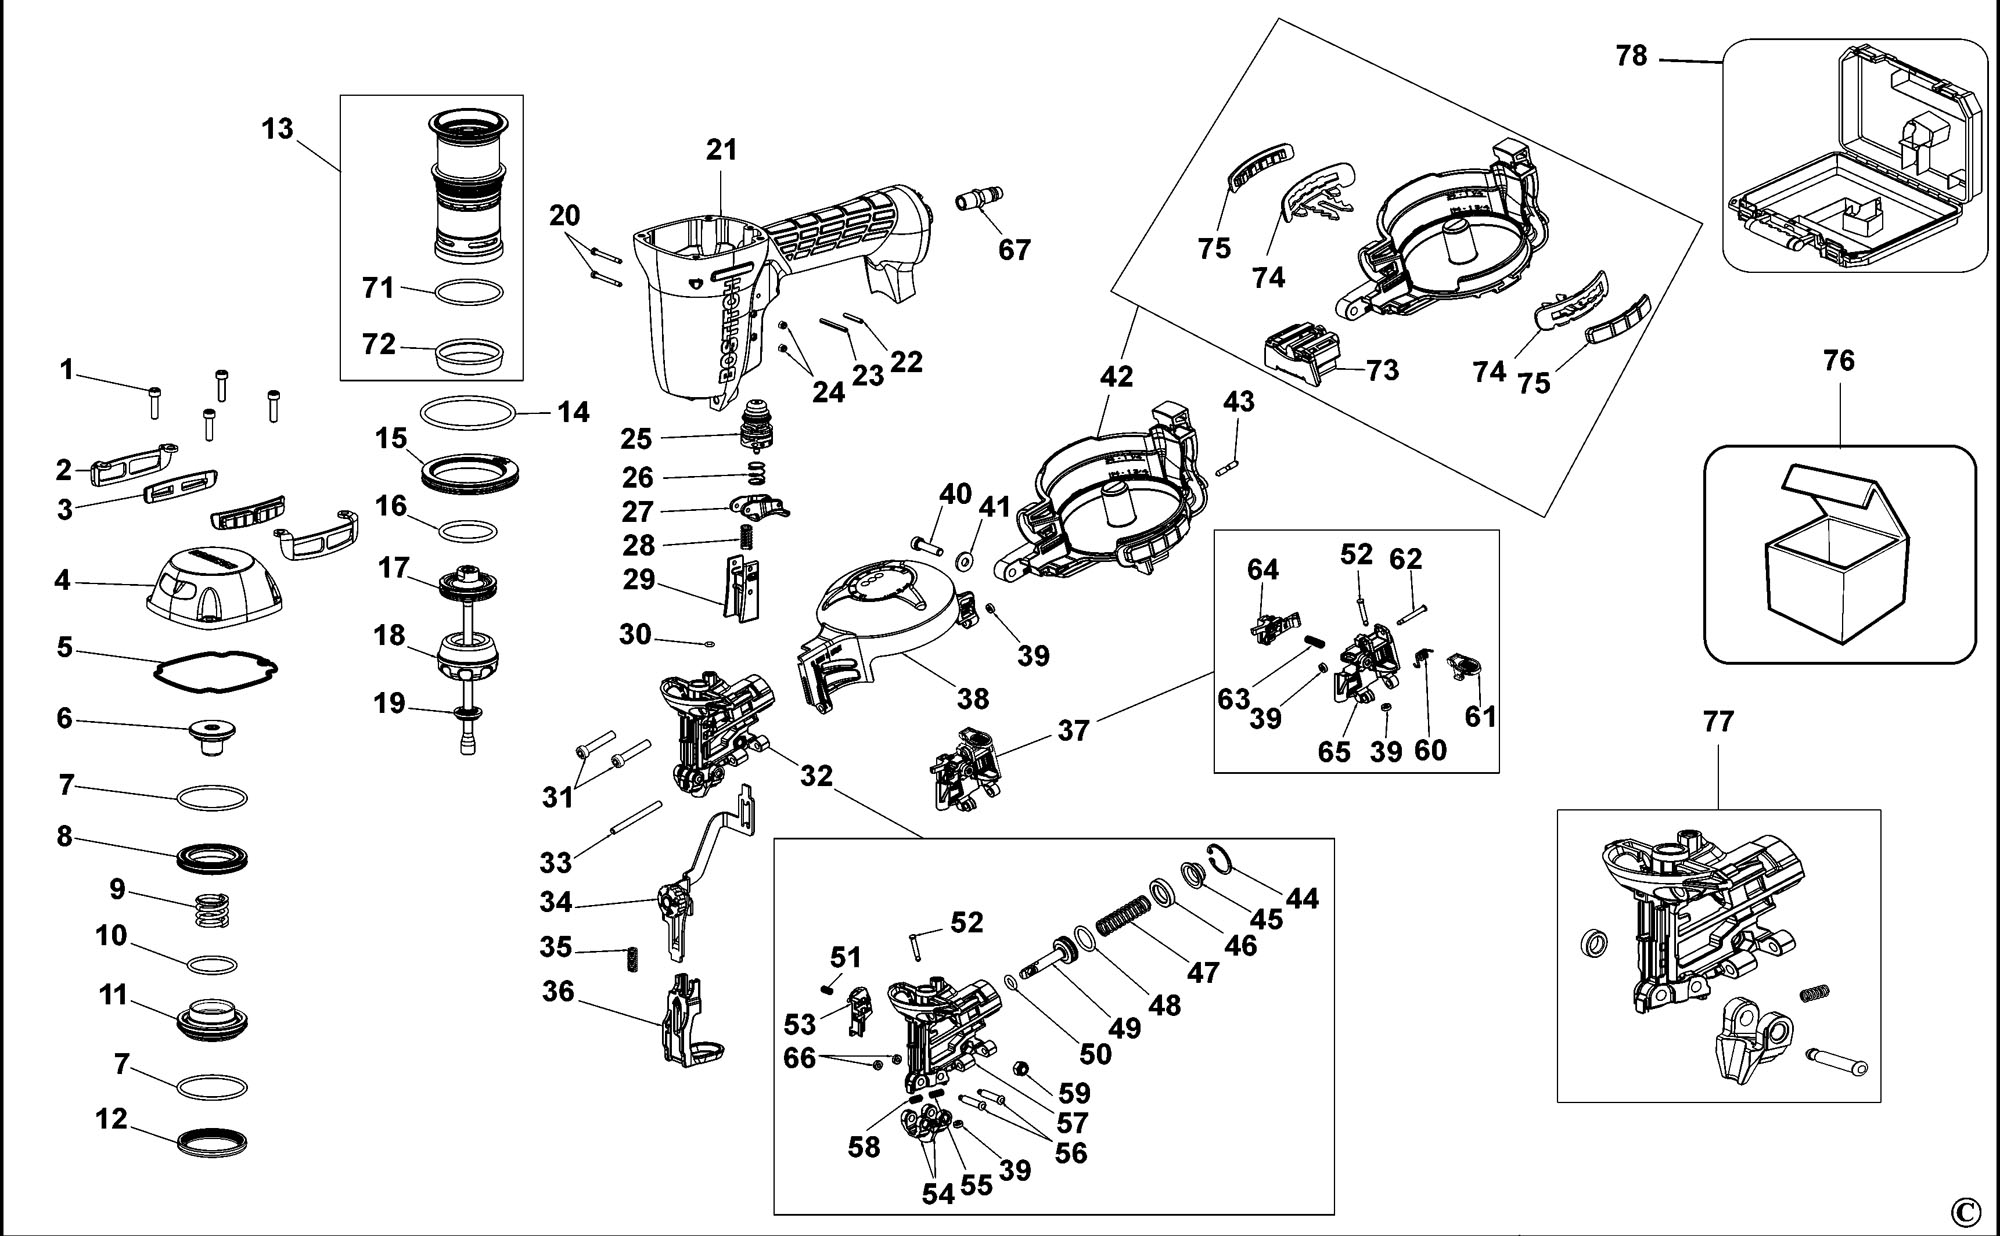 Spares for Bostitch Rn46dw Nailer (type Reva) SPARE_RN46DW